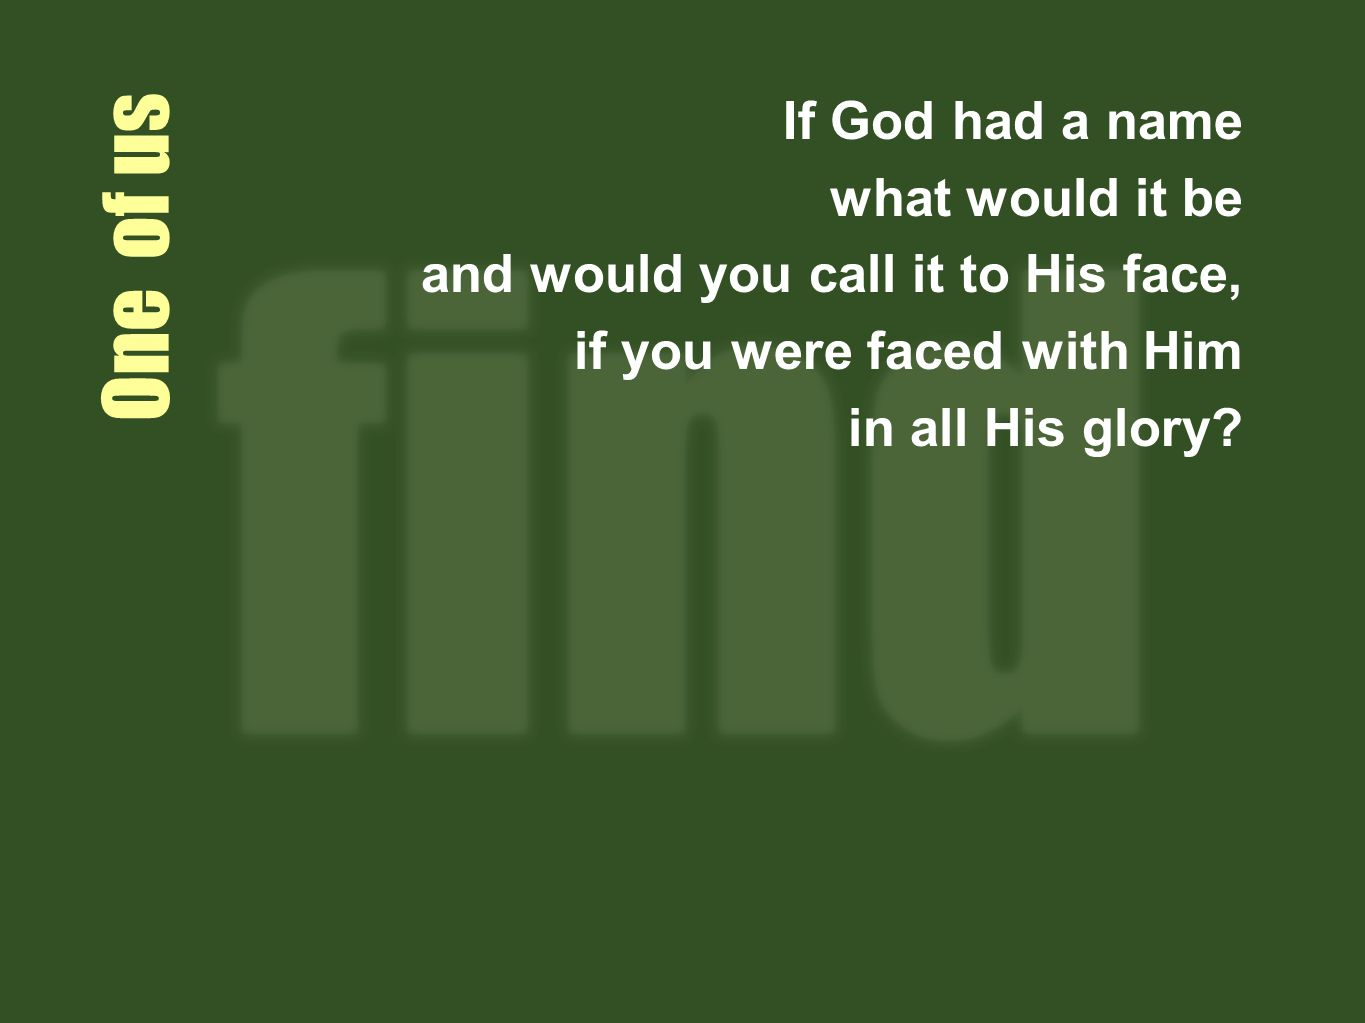 One of us If God had a name what would it be and would you call it to His face, if you were faced with Him in all His glory?